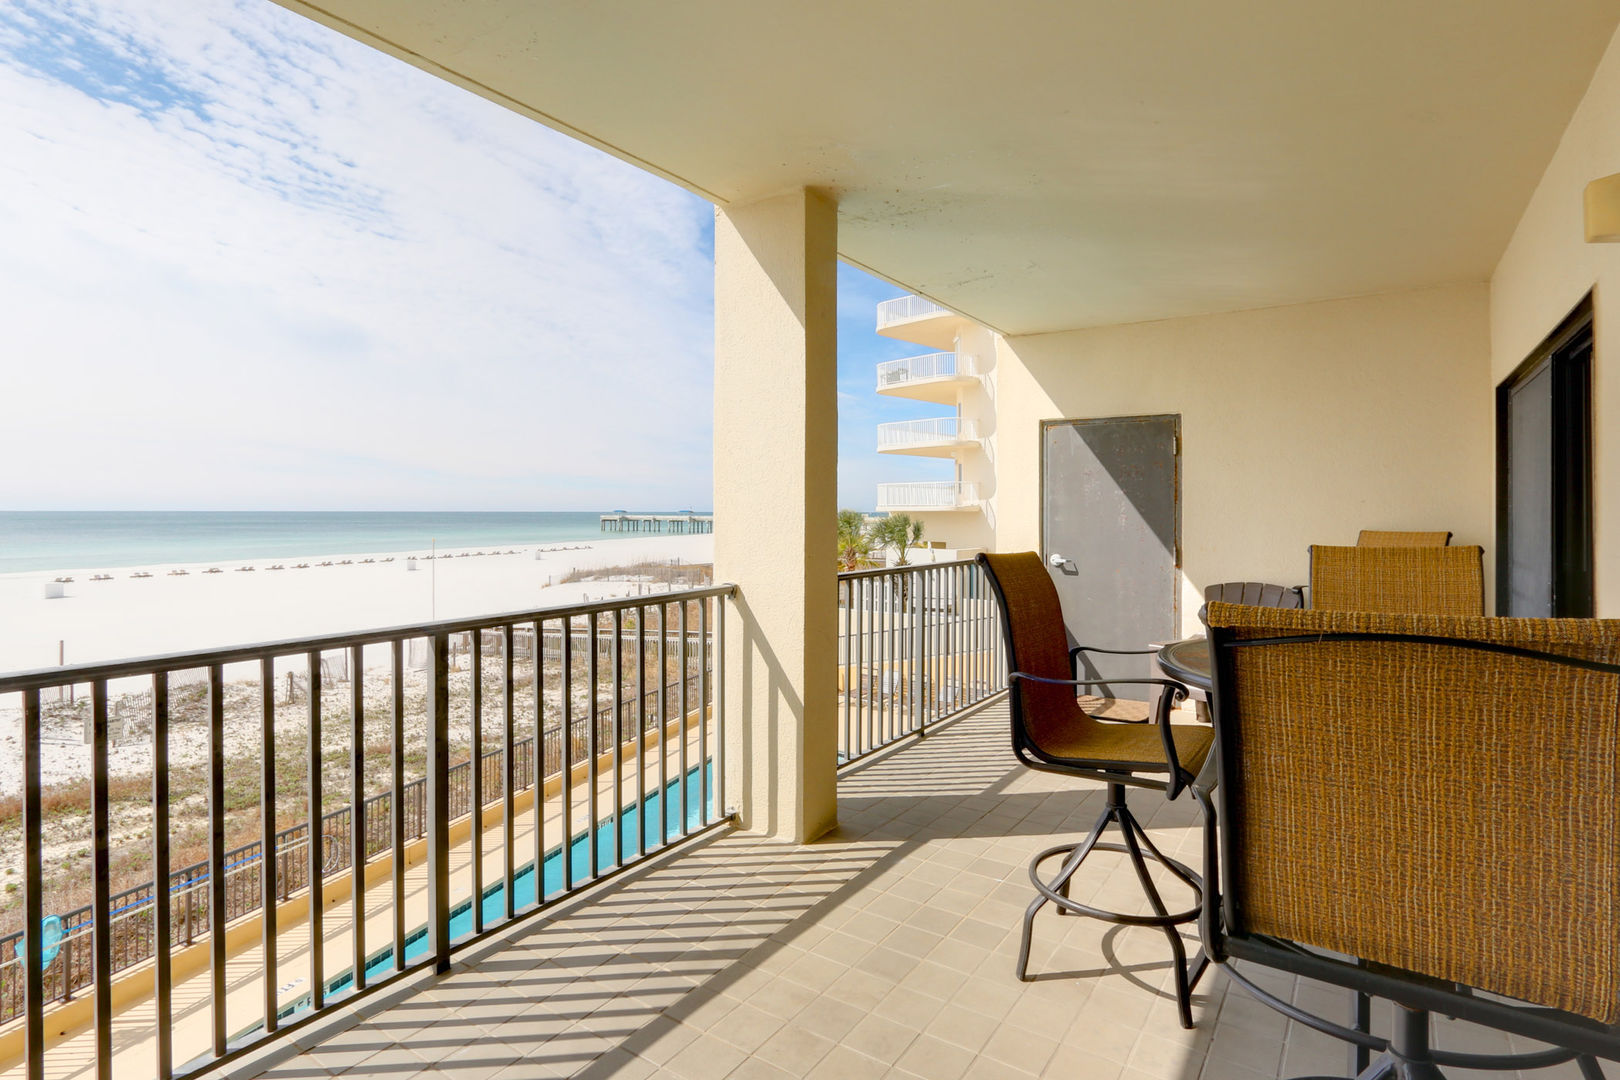 Relax on the Balcony with Beachfront Views